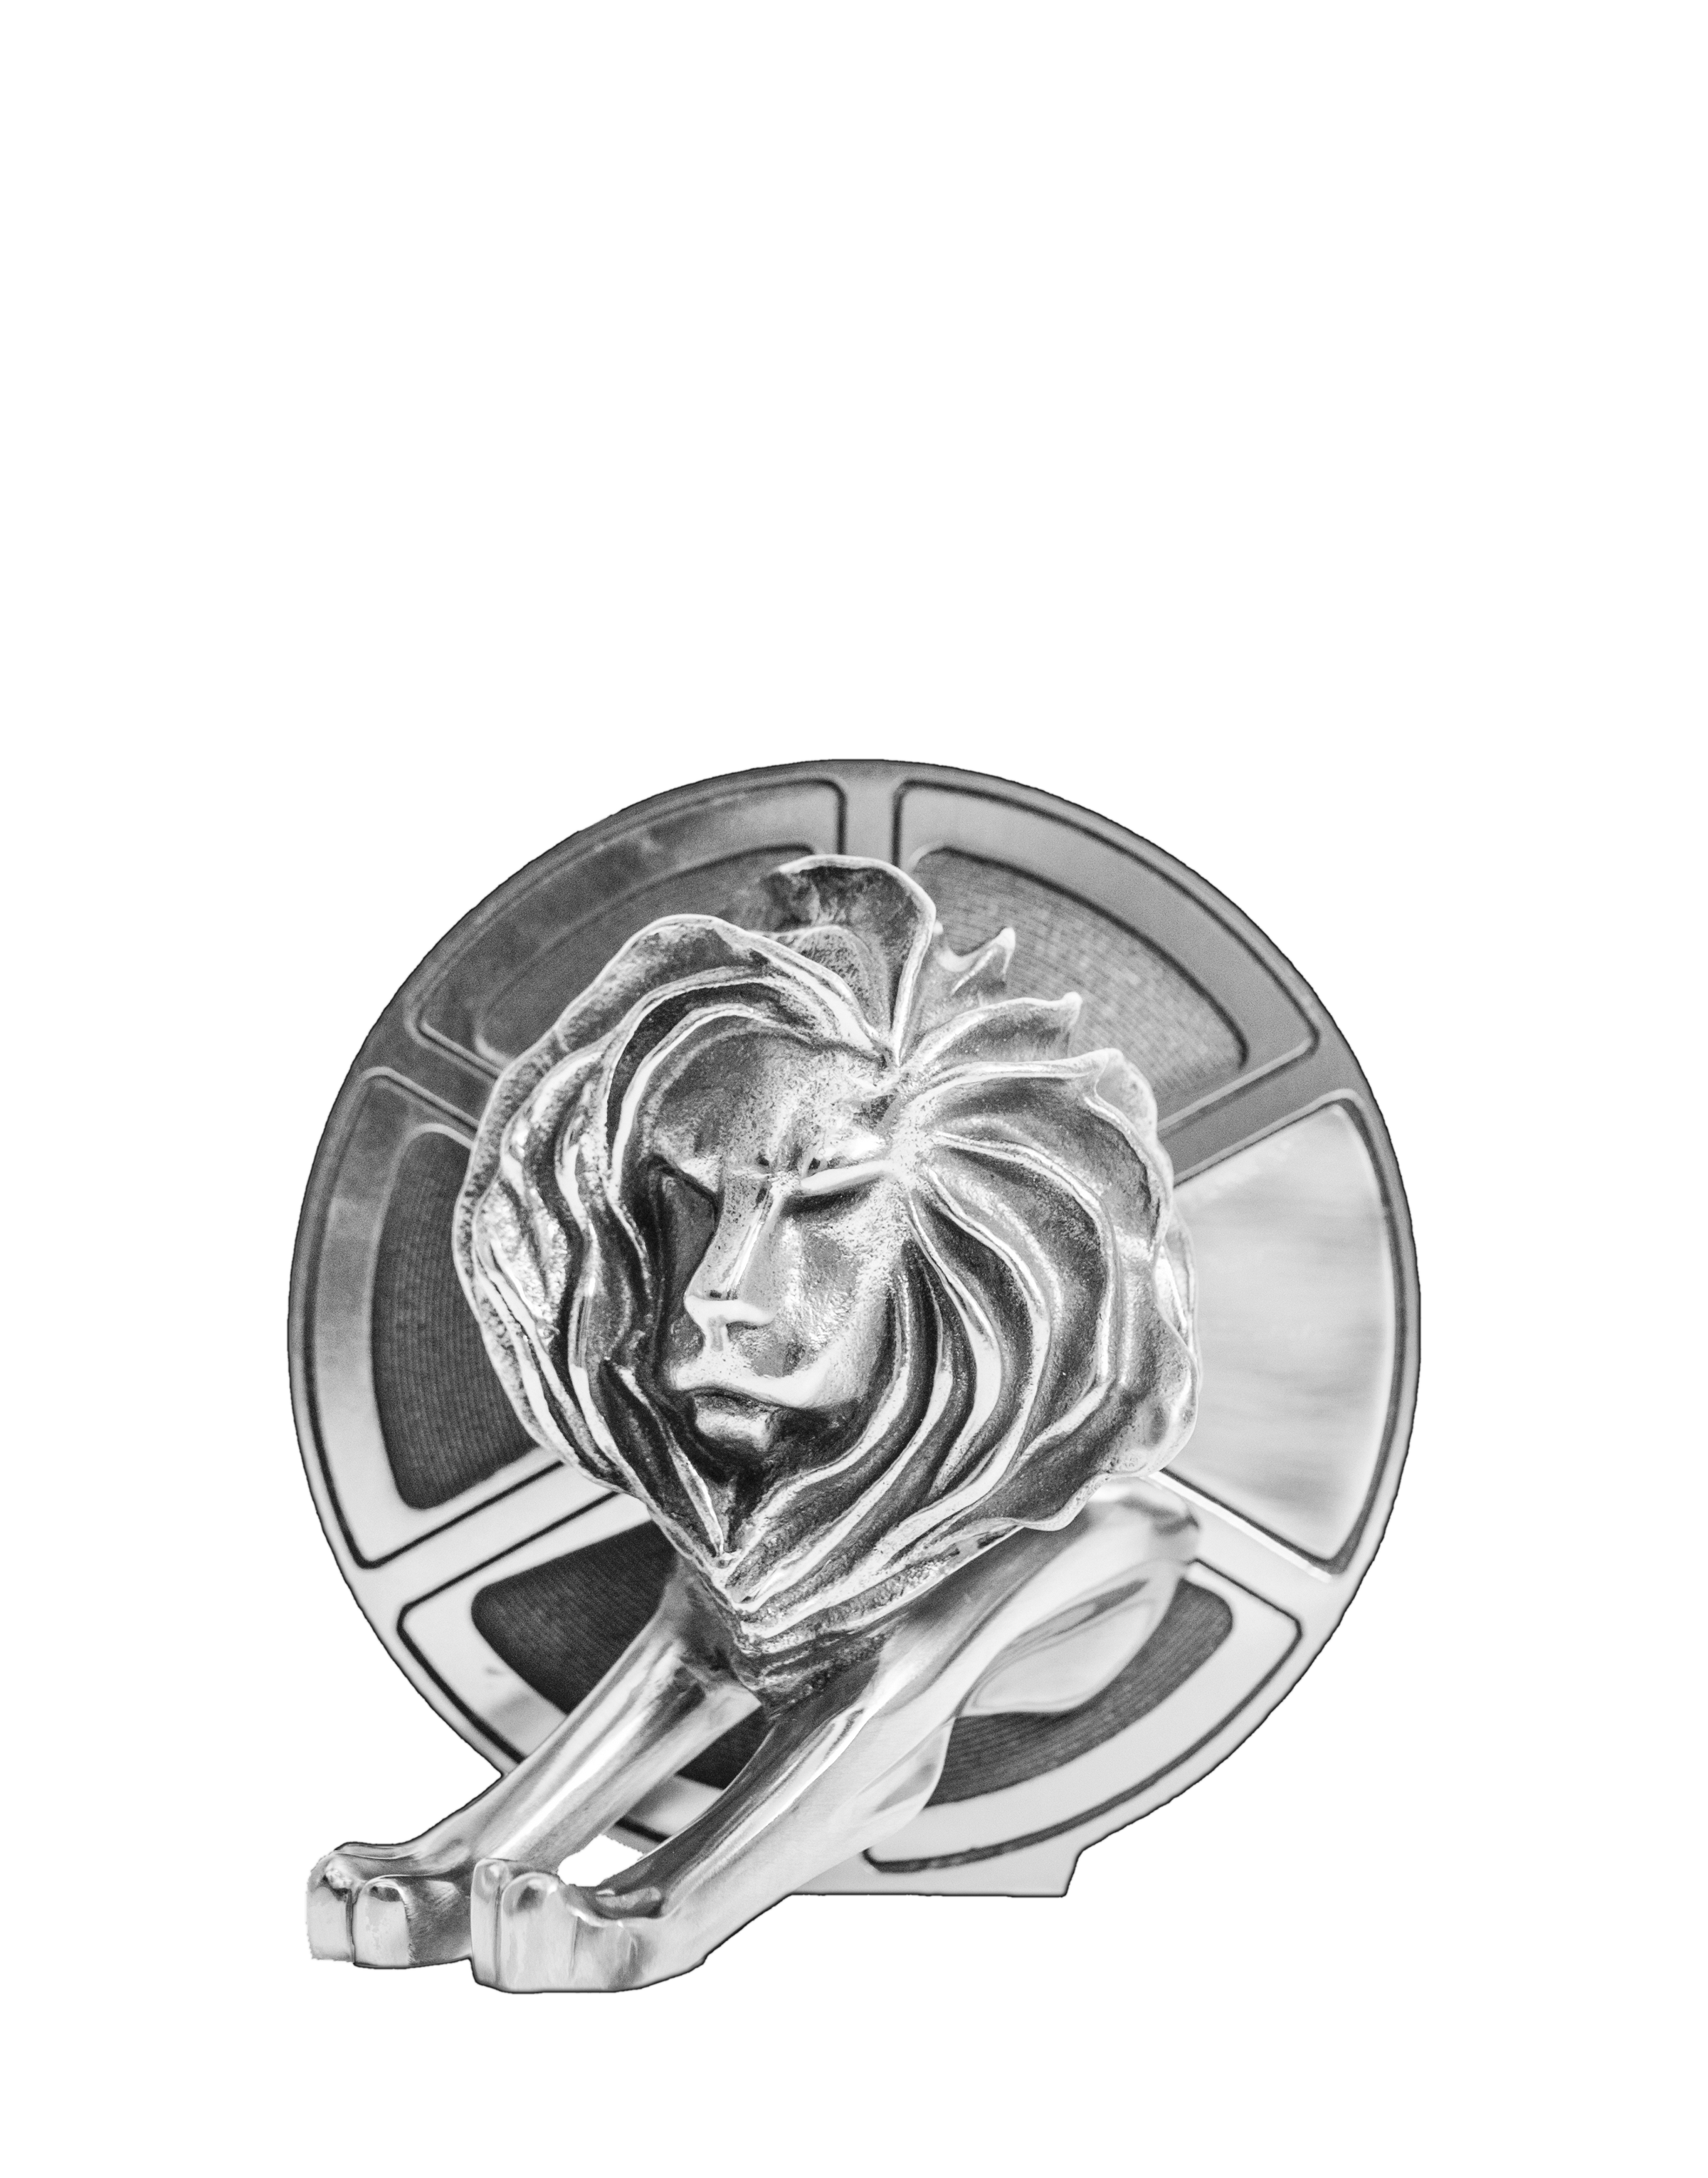 Cannes Lions Awards